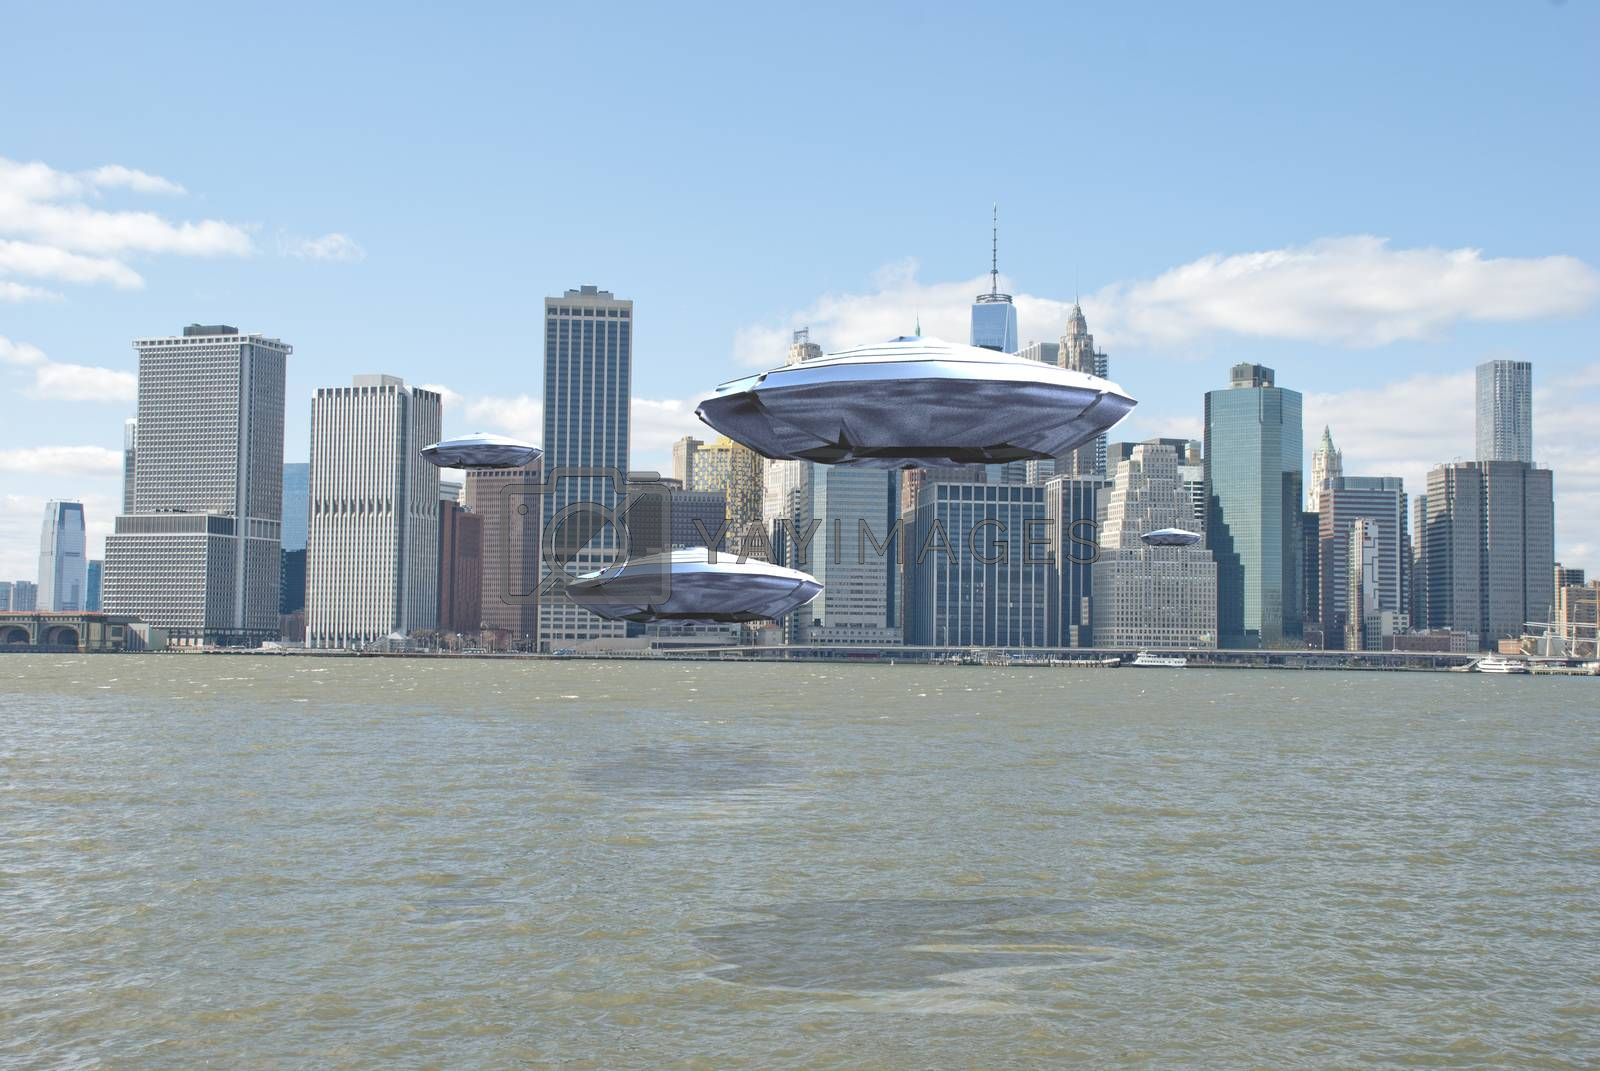 Flying saucers over New York harbour. 3D rendering